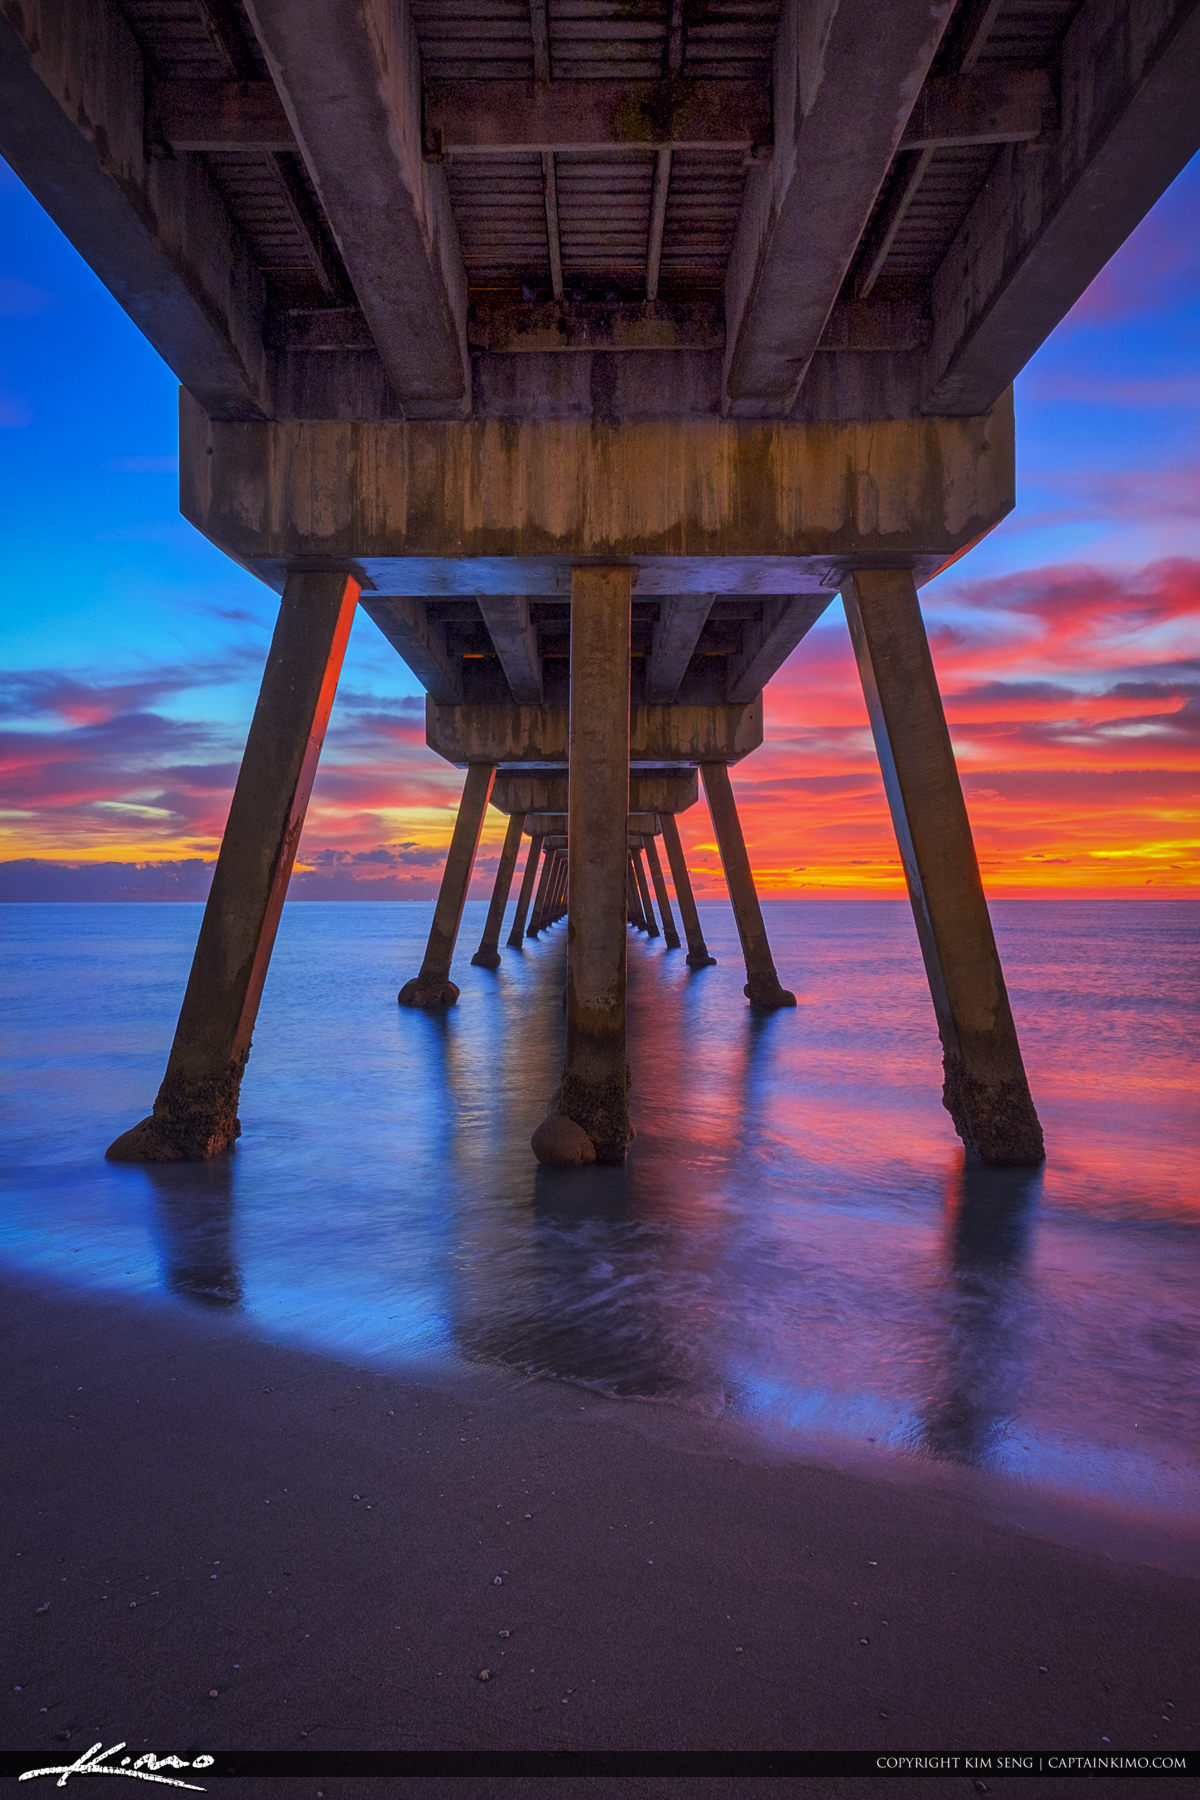 fishing chair amazon office workout abs deerfield beach vertical sunrise under pier